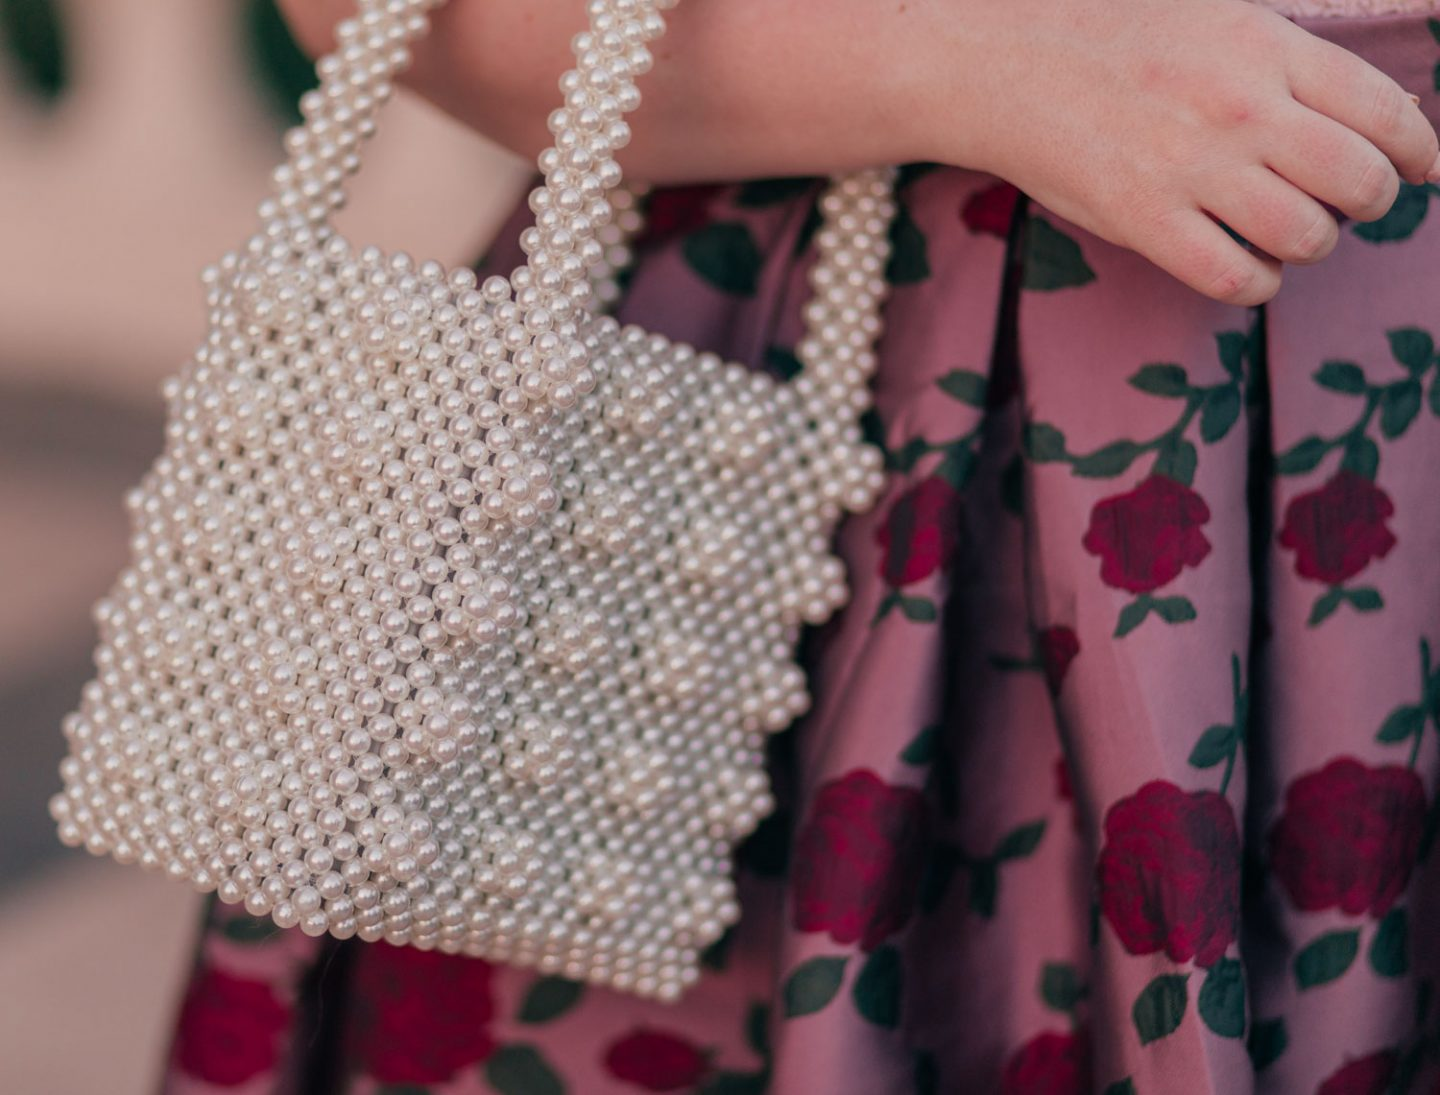 Feminine Fashion Blogger Elizabeth Hugen of Lizzie in Lace shares 5 Easy Ways to Dress More Feminine and wear a pink outfit with a pearl handbag and floral skirt